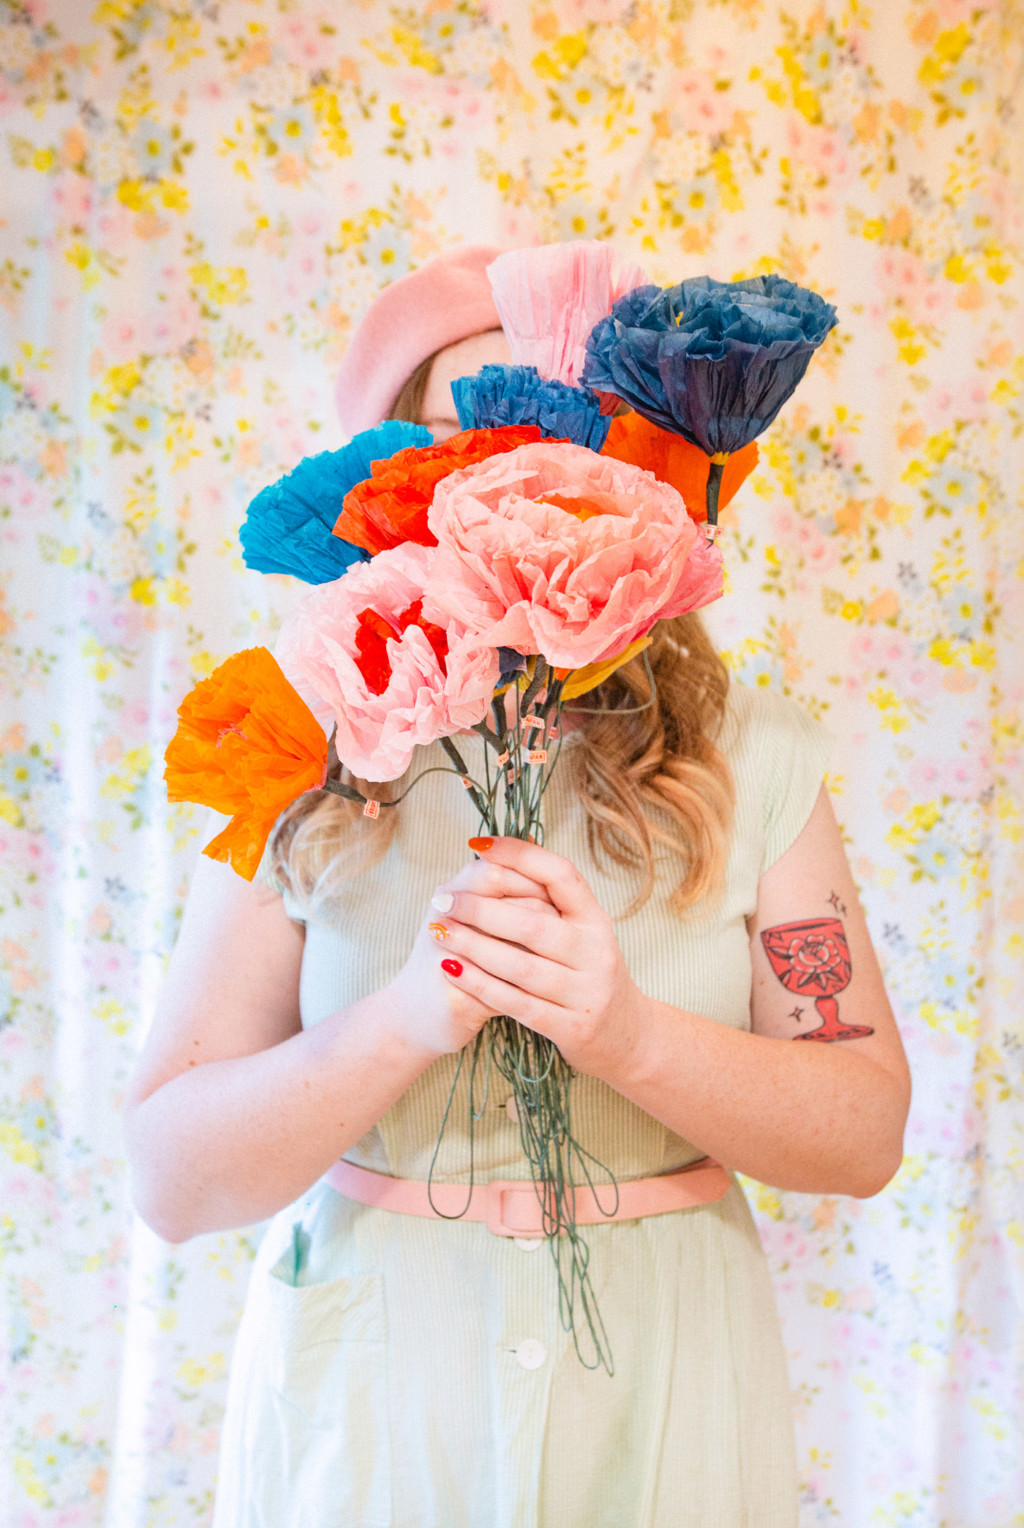 Louise Pretzel stands against a floral backdrop wearing a pink beret and a dress. She's holding paper flowers in front of her face.